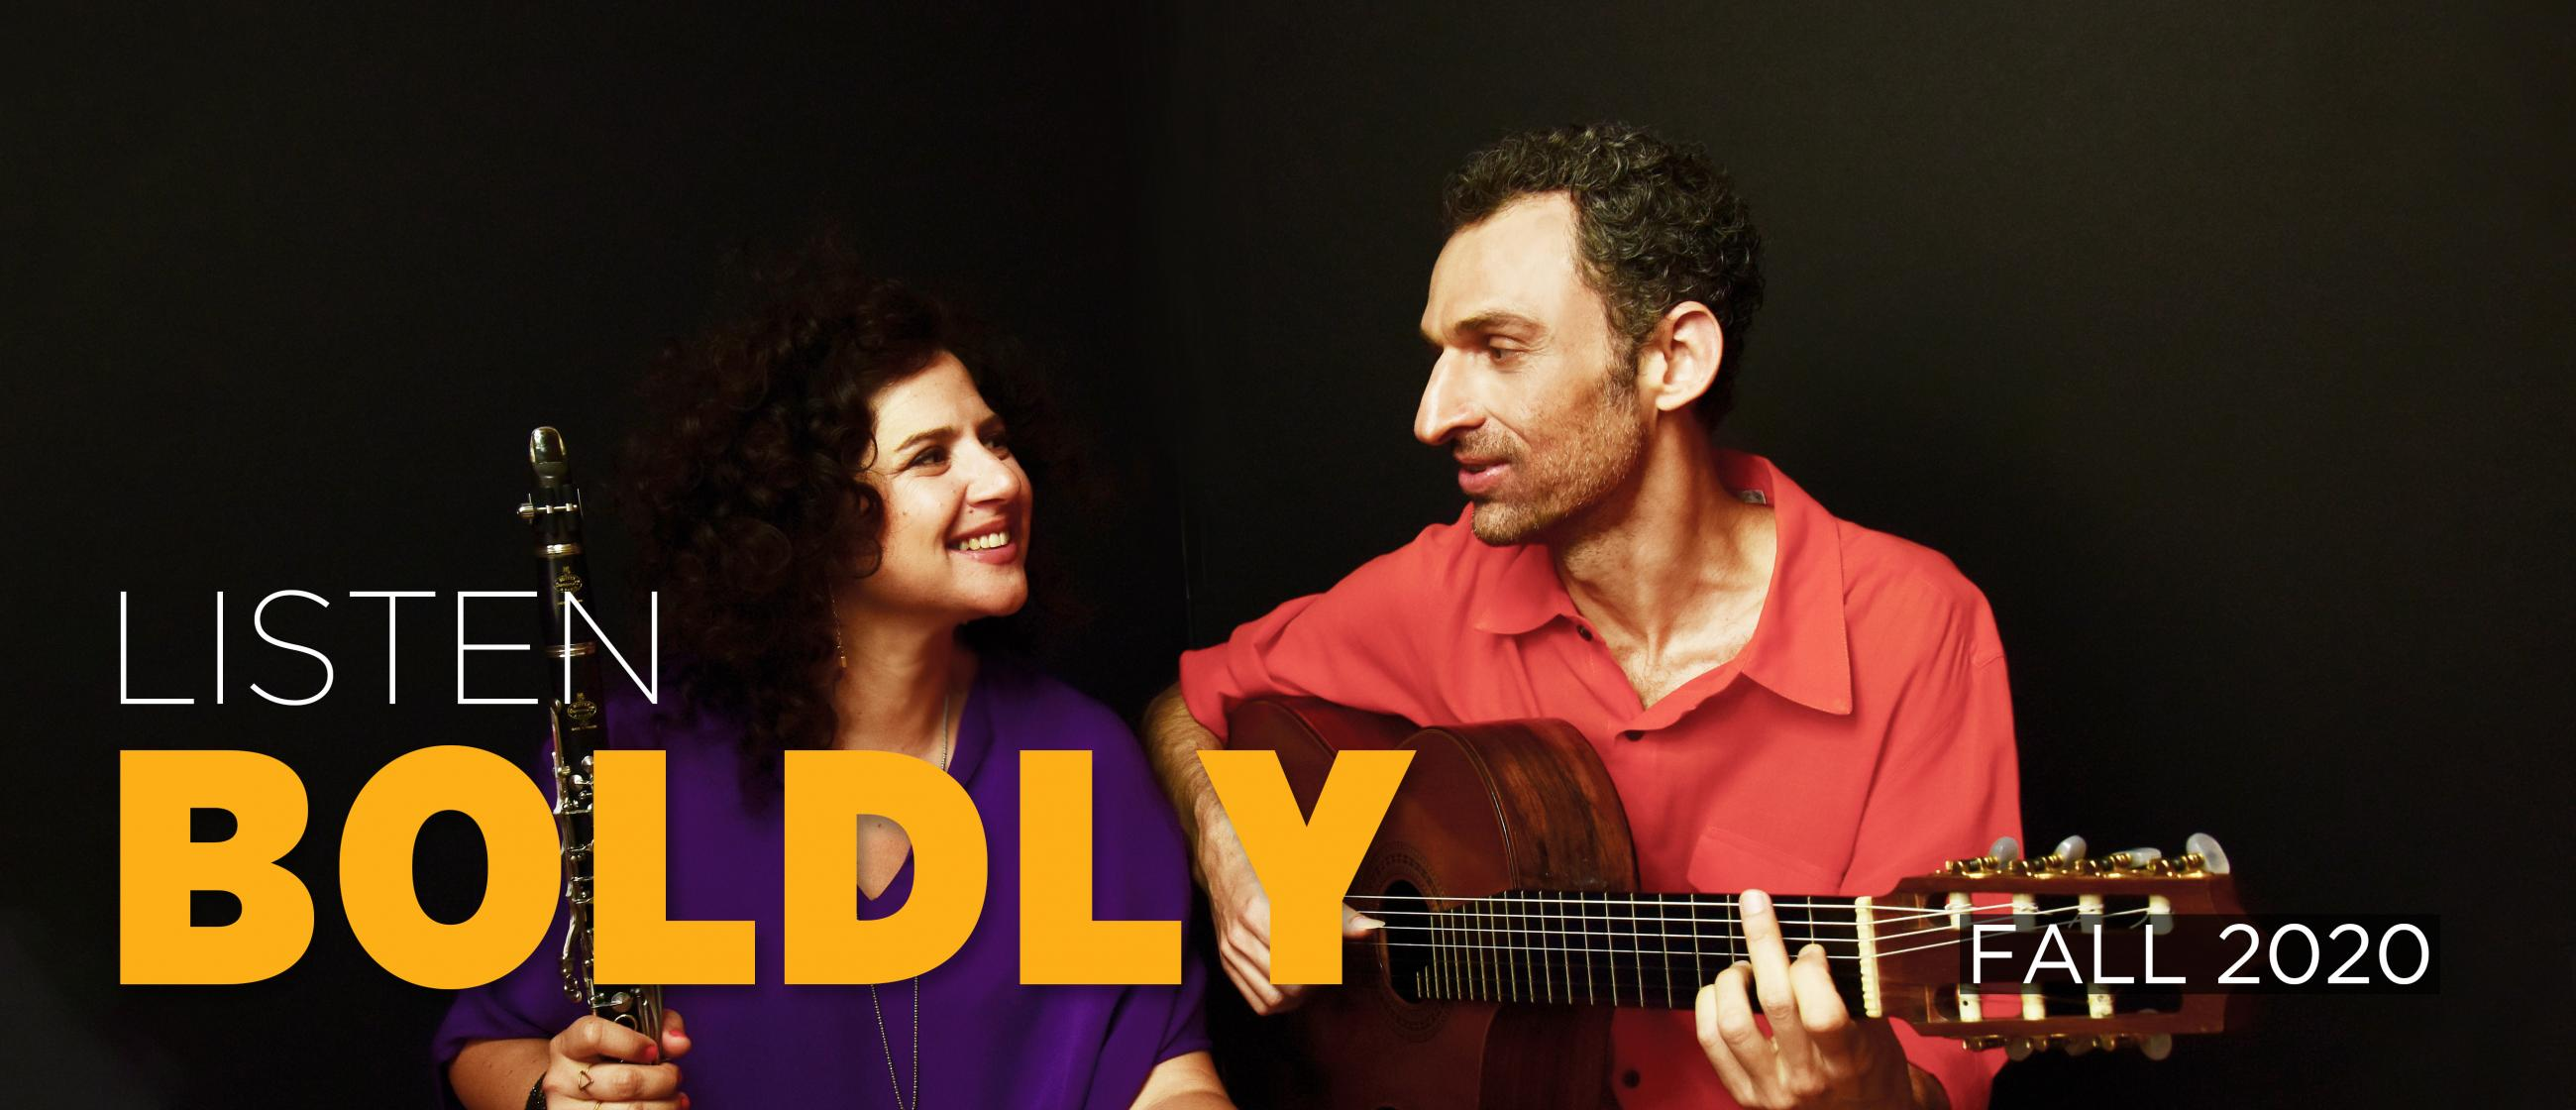 """Image of clarinetist Anat Cohen holding a clarinet and guitarist Marcello Gonçalves playing guitar, with the text """"Listen Boldly"""" and """"Fall 2020"""""""